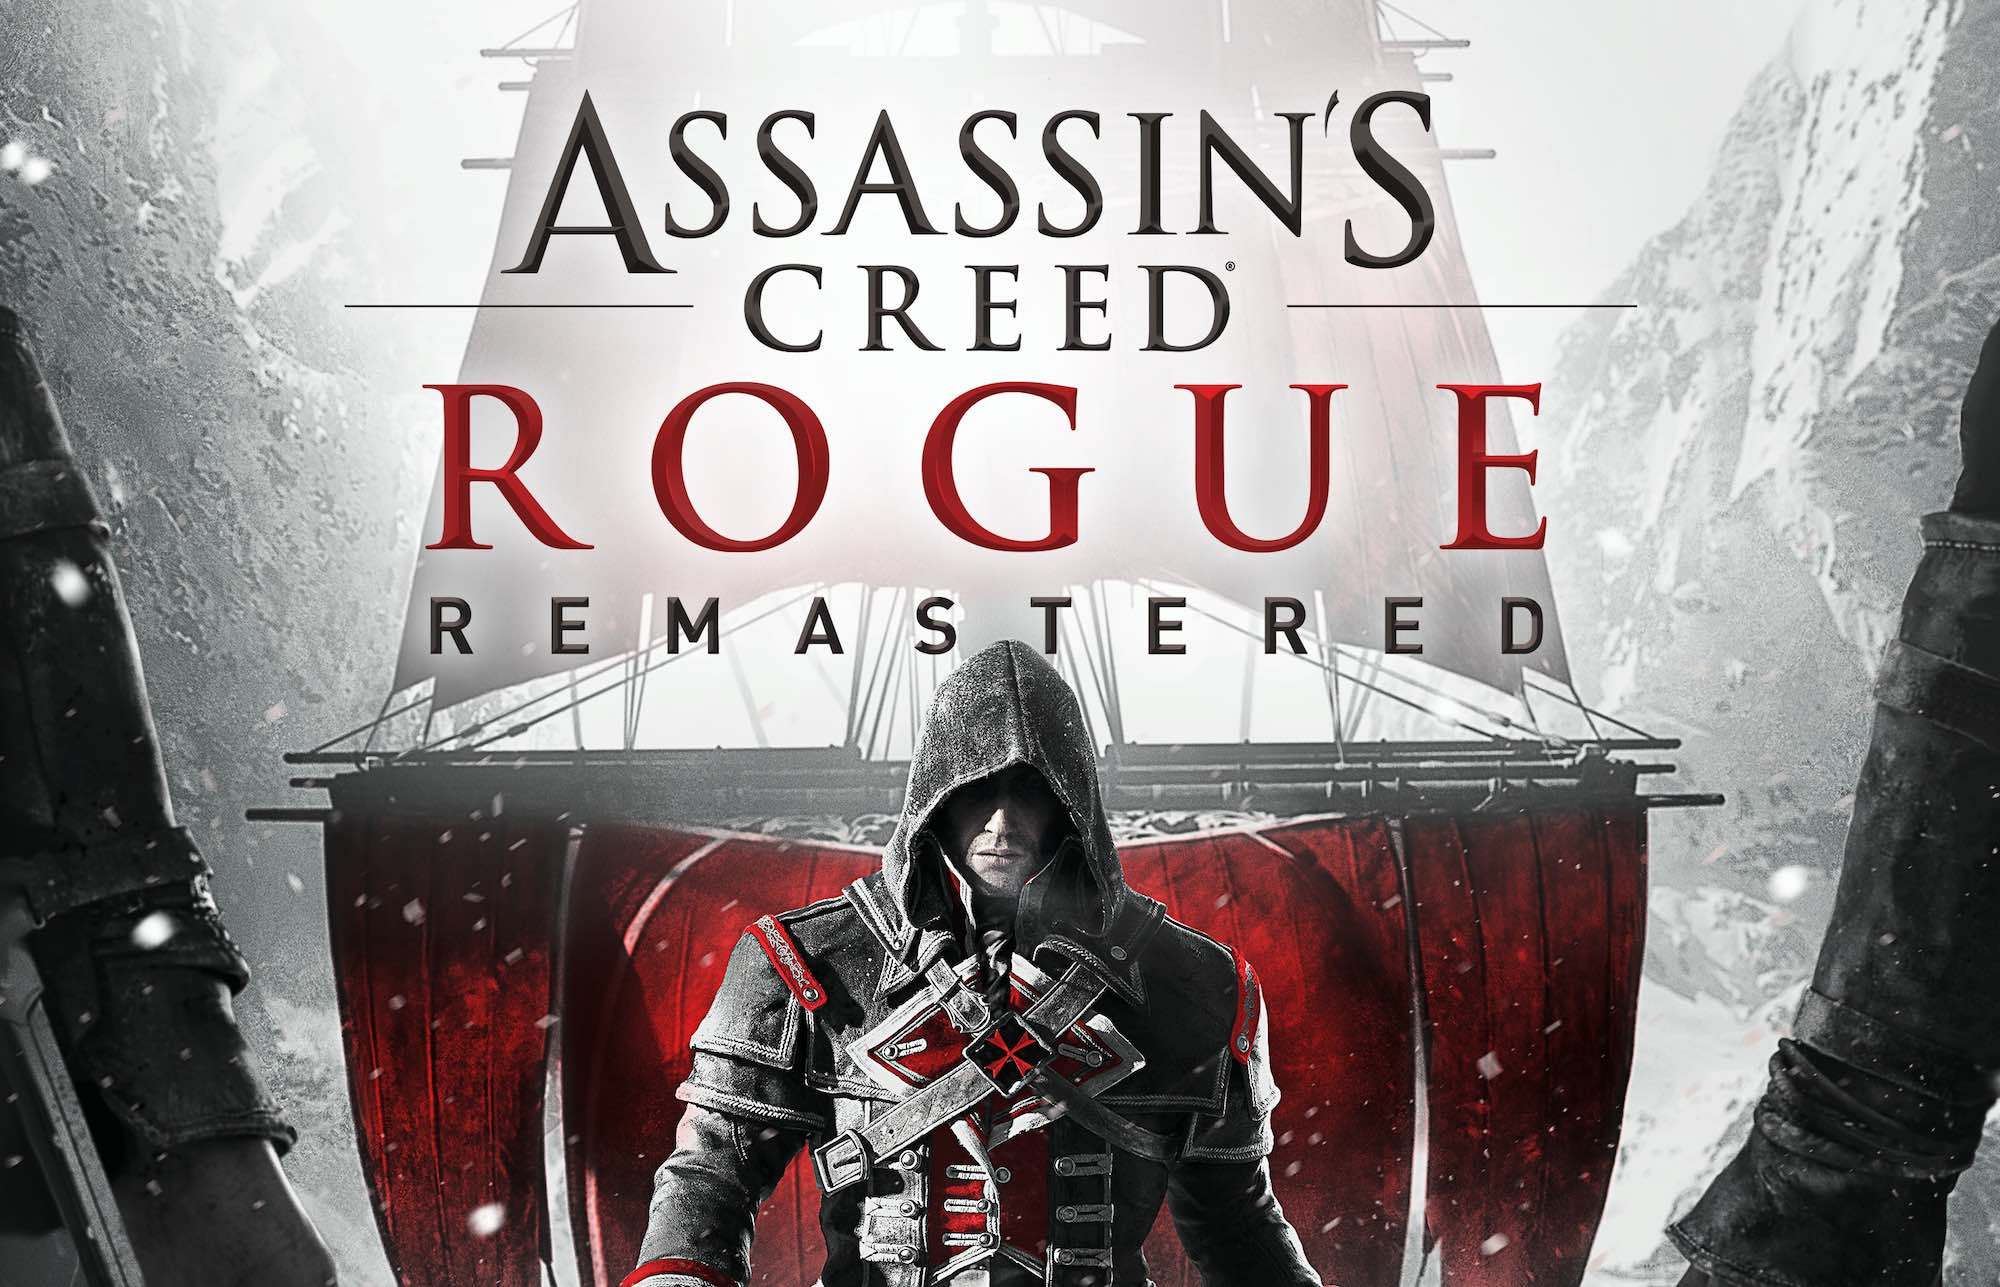 Assassin's Creed Rogue Remastered Officially Announce, Out in March on PS4